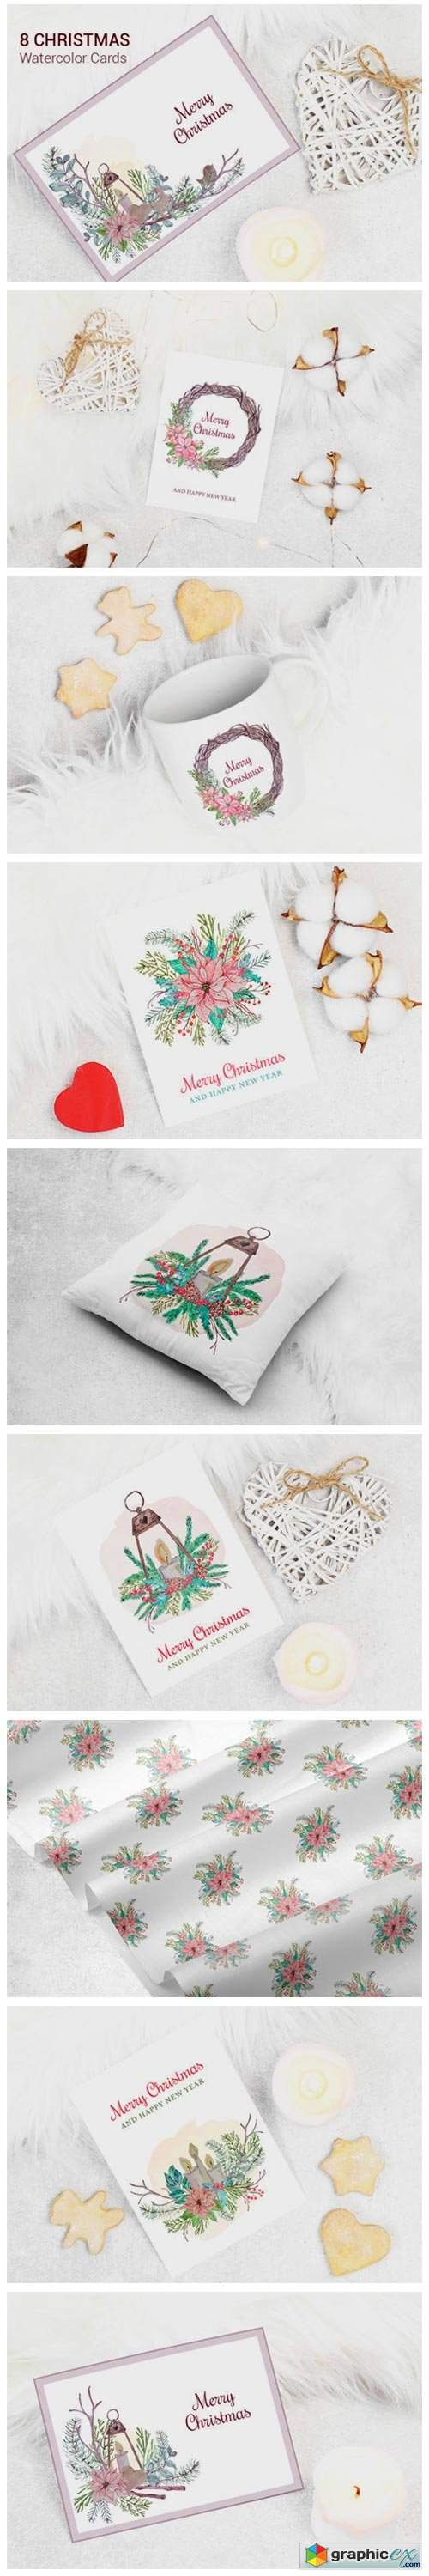 Merry Christmas Watercolor Greeting Card